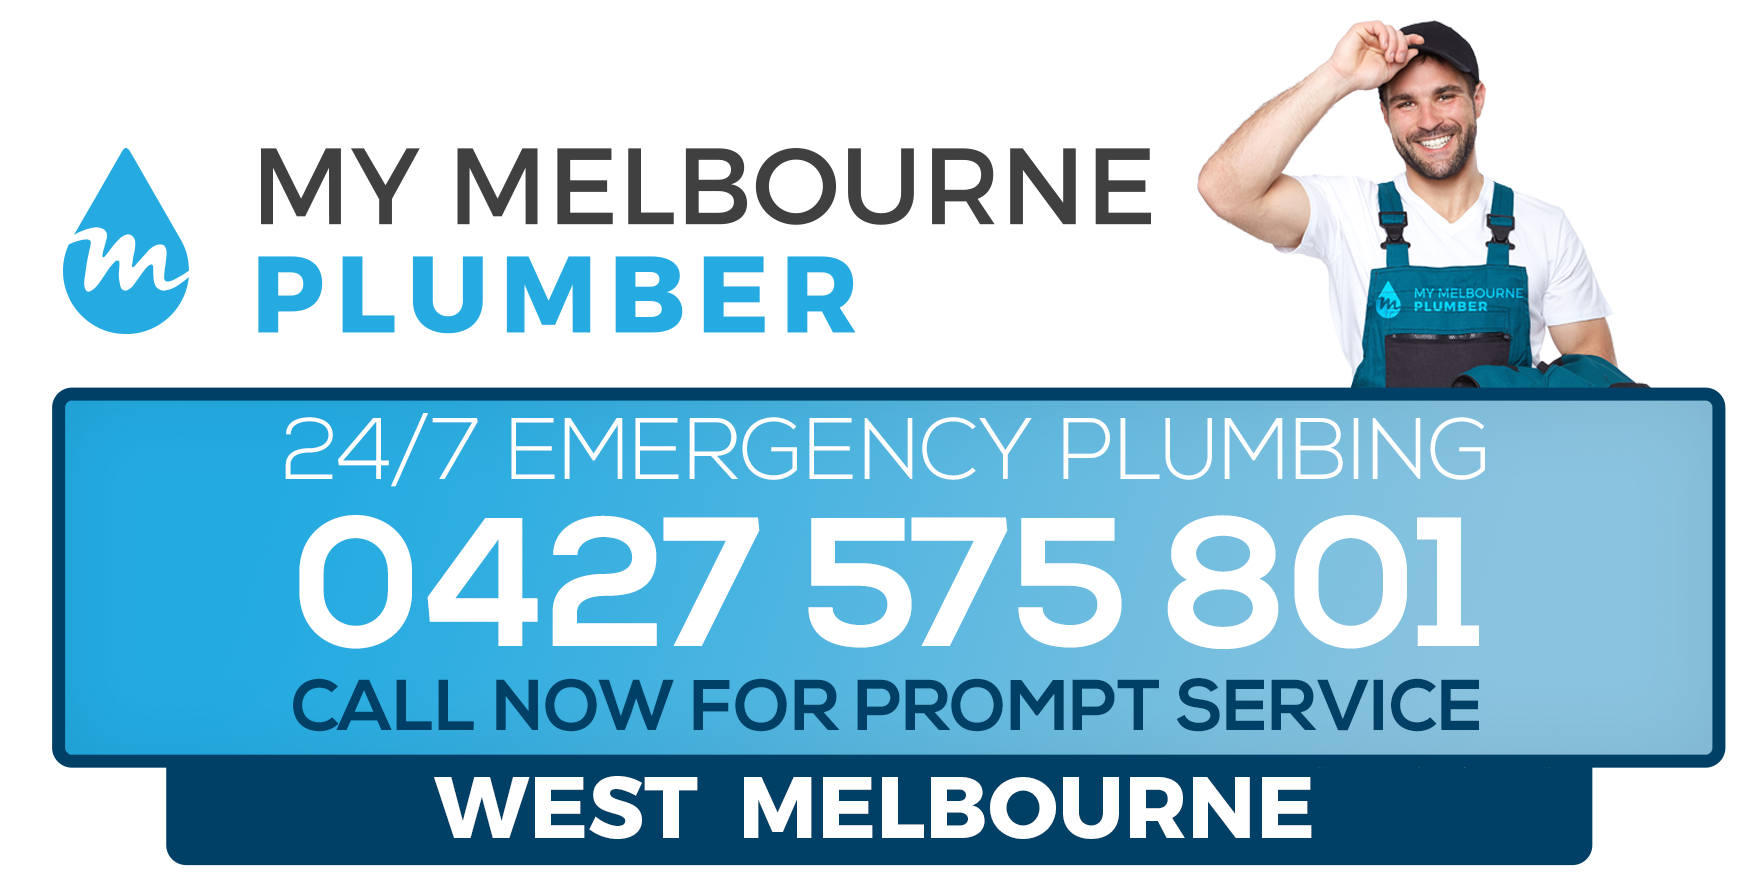 Plumbers West Melbourne